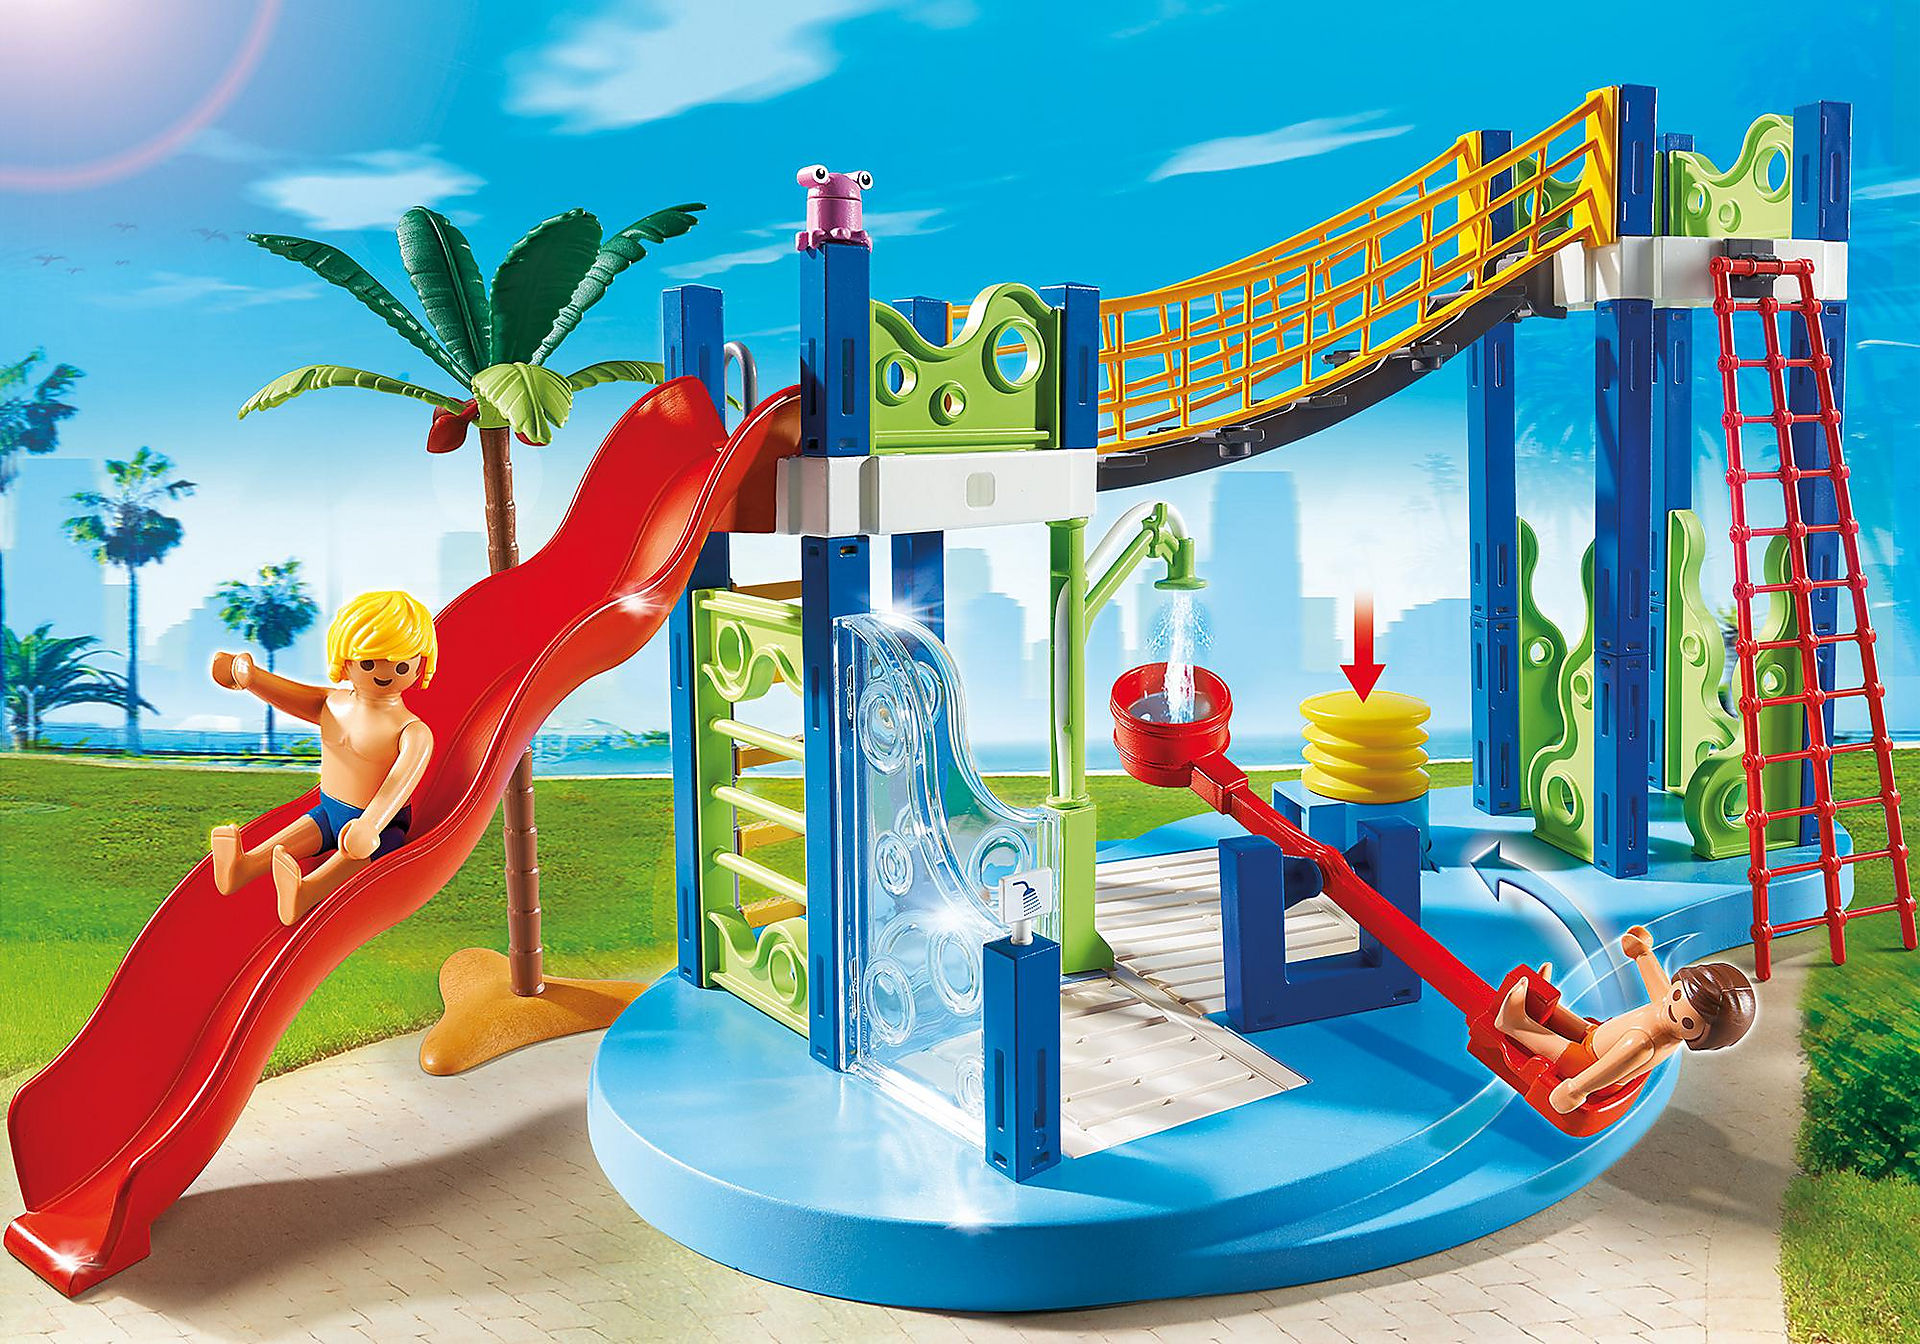 http://media.playmobil.com/i/playmobil/6670_product_detail/Waterspeeltuin